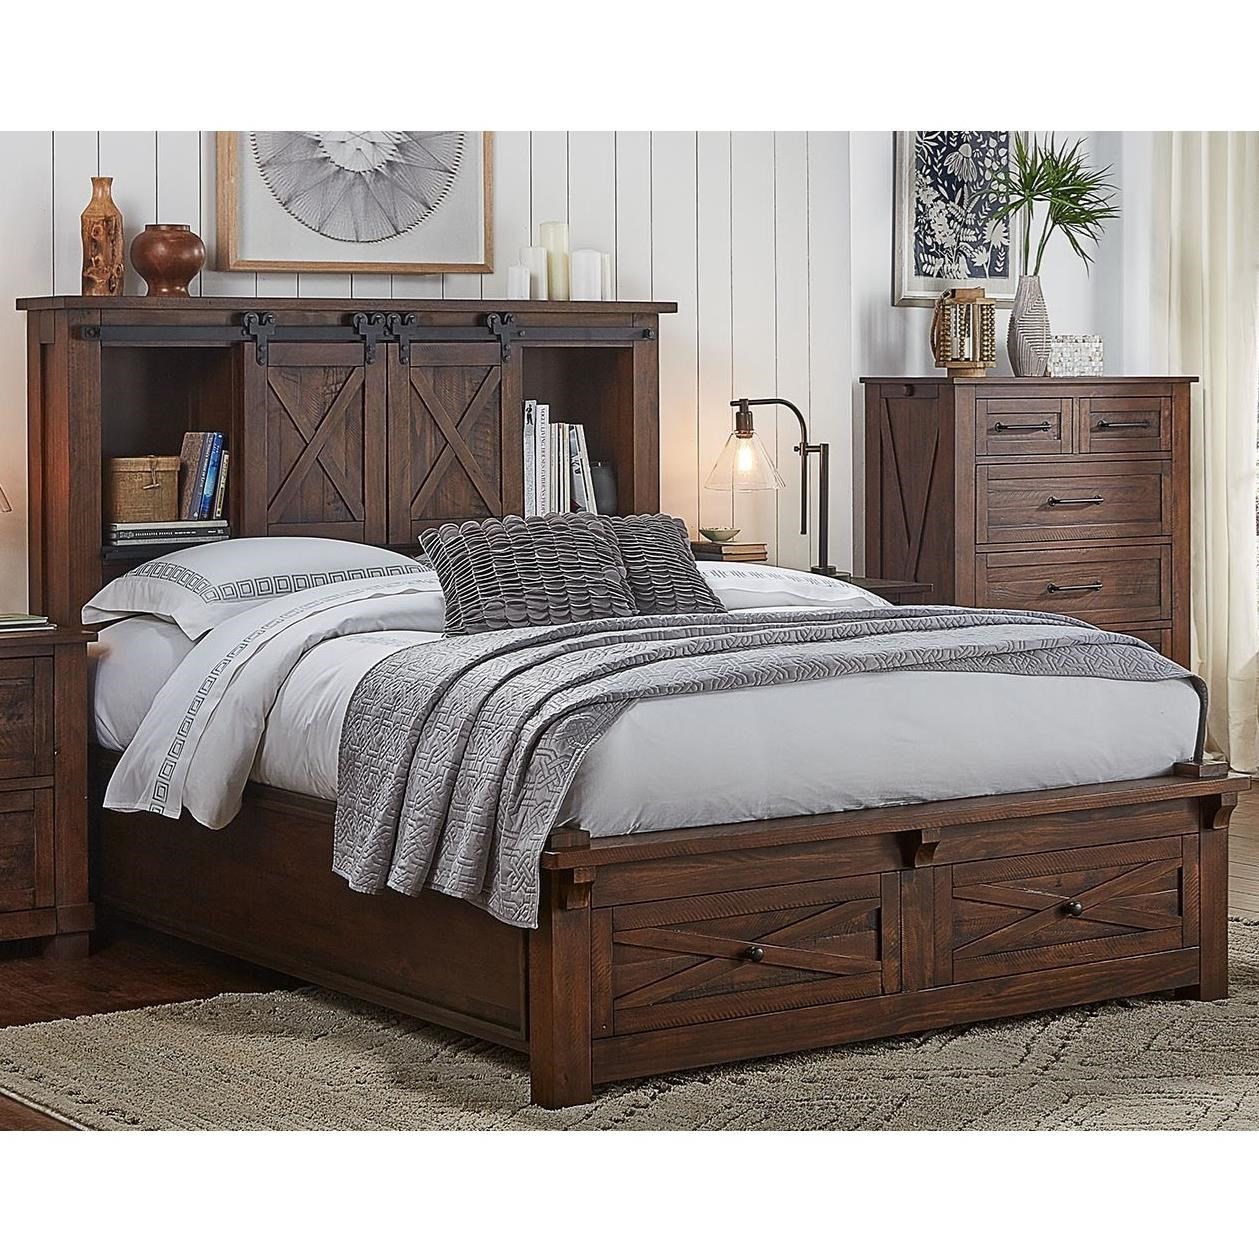 Aamerica Sun Valley Suv Rt 5 13 1 King Storage Bed With